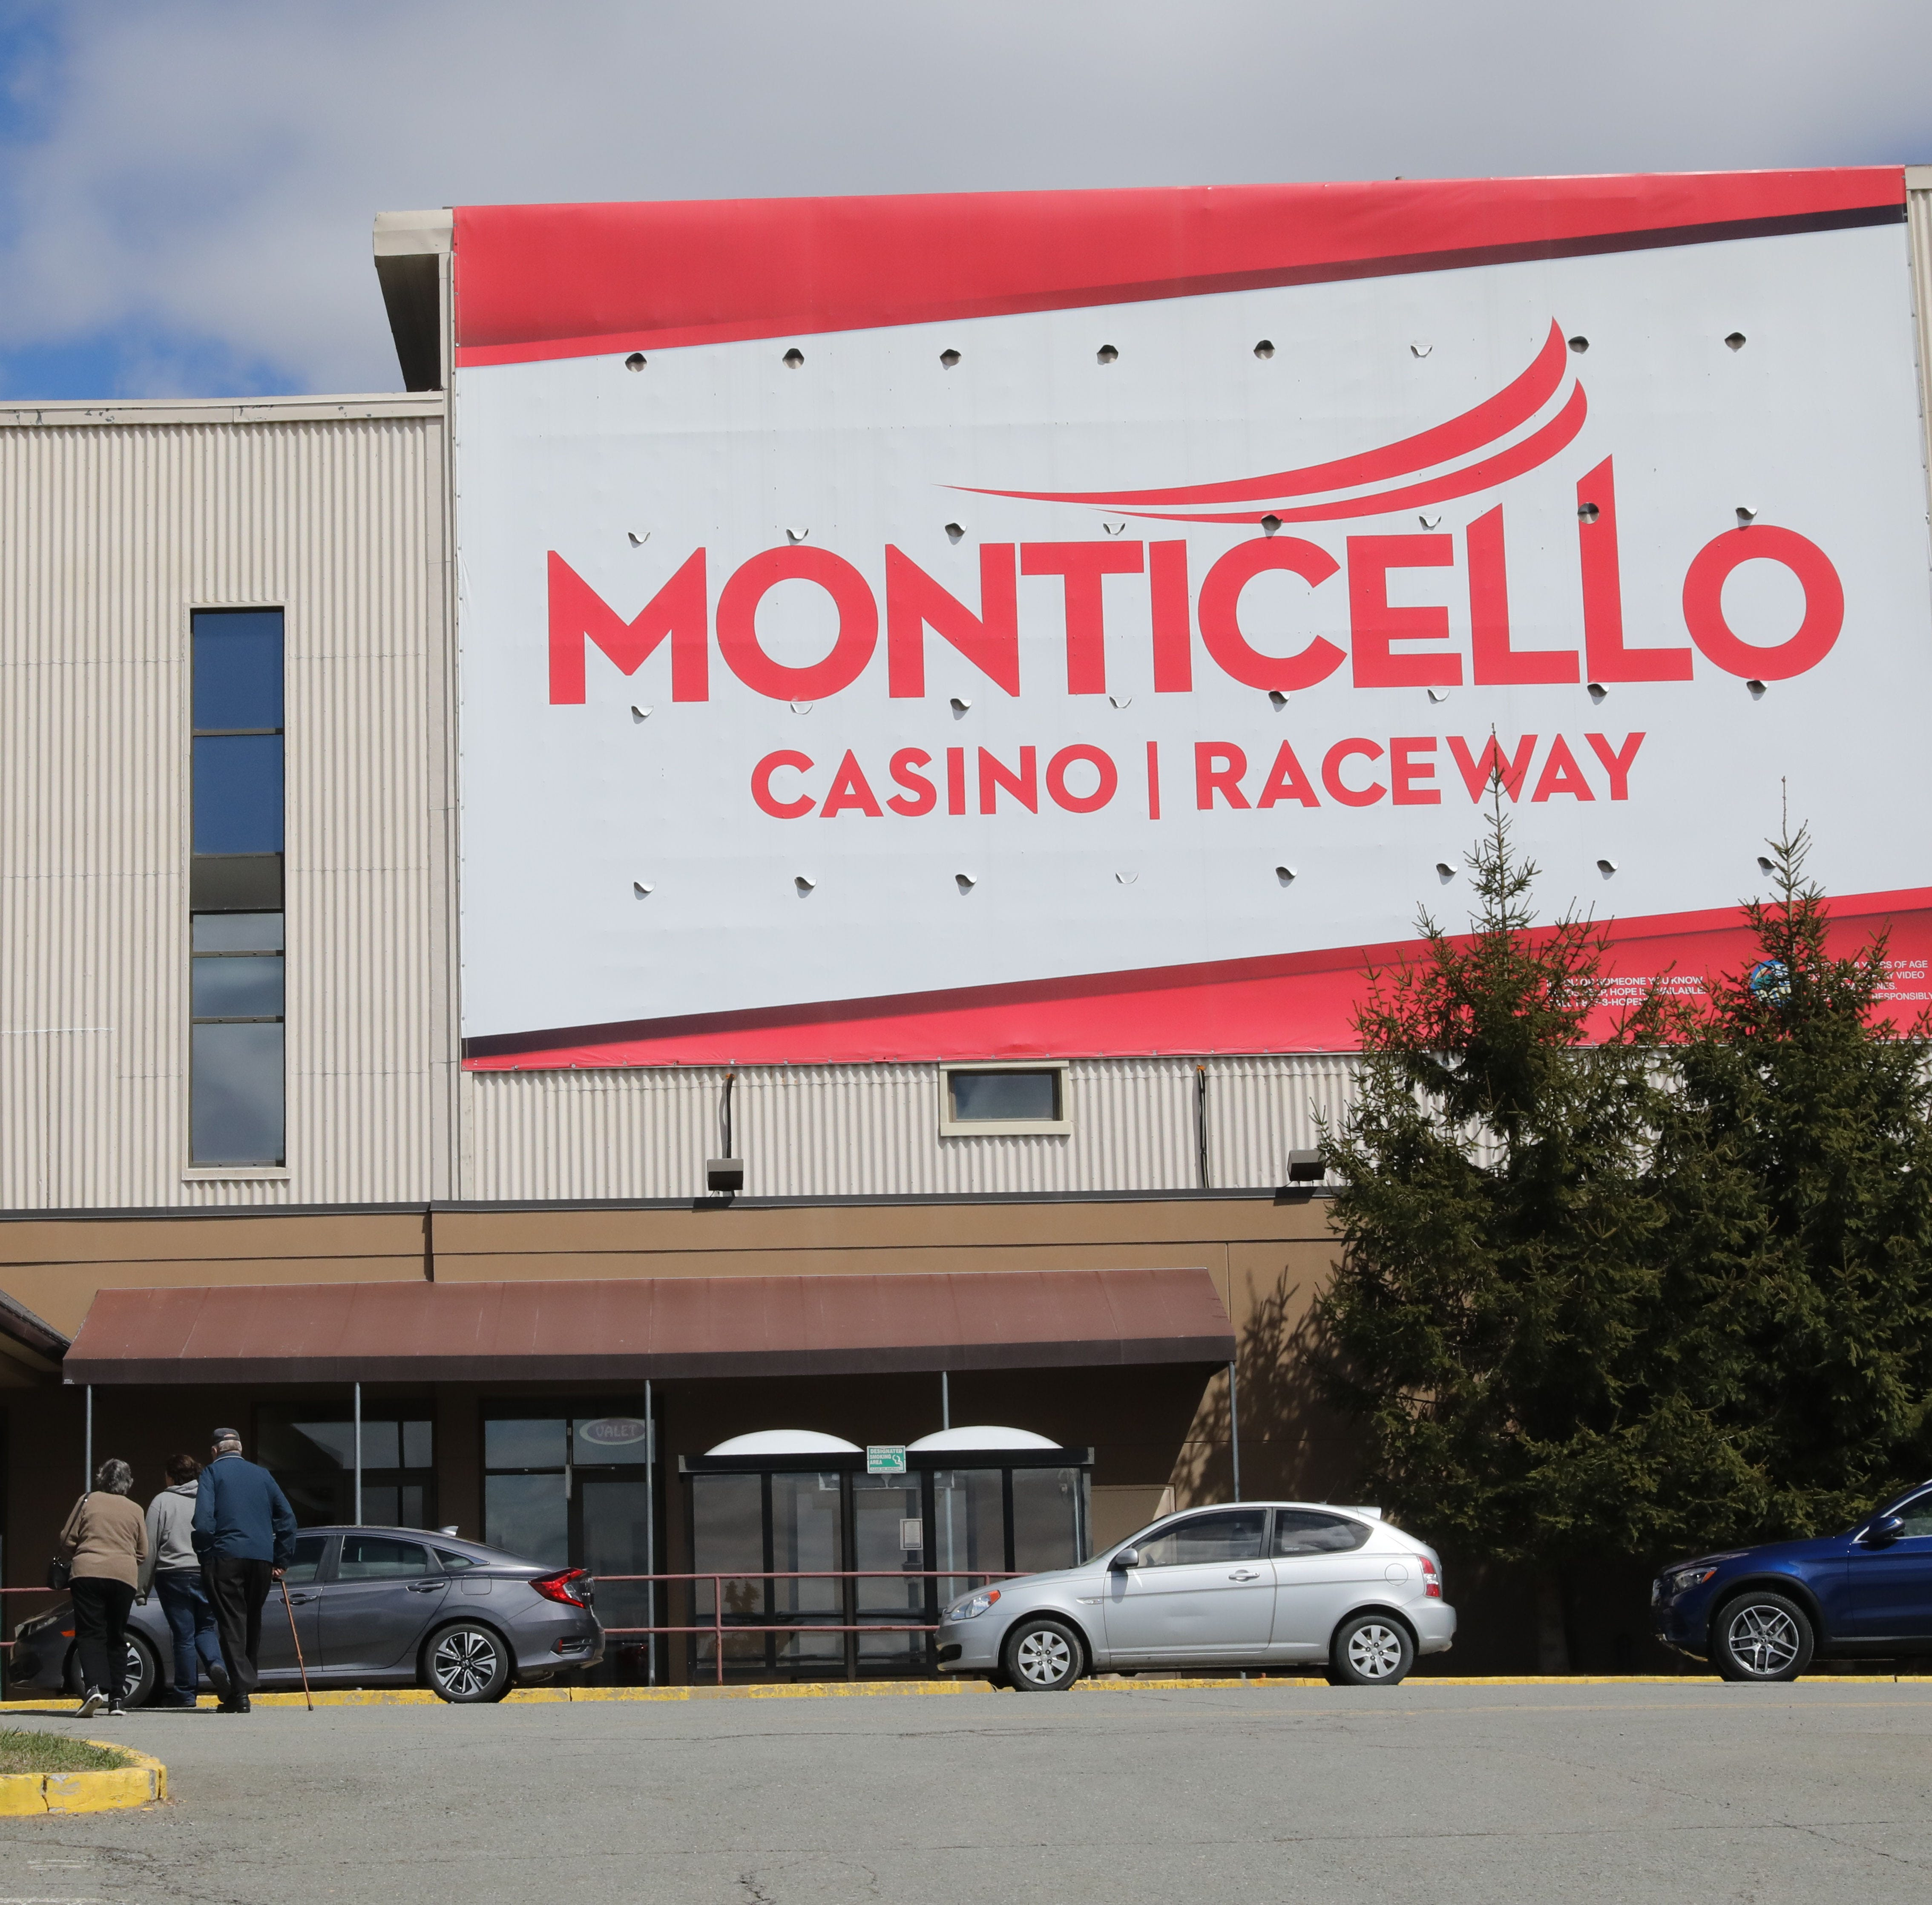 Monticello Raceway's casino is closing: What it means for horse racing and Resorts World Catskills